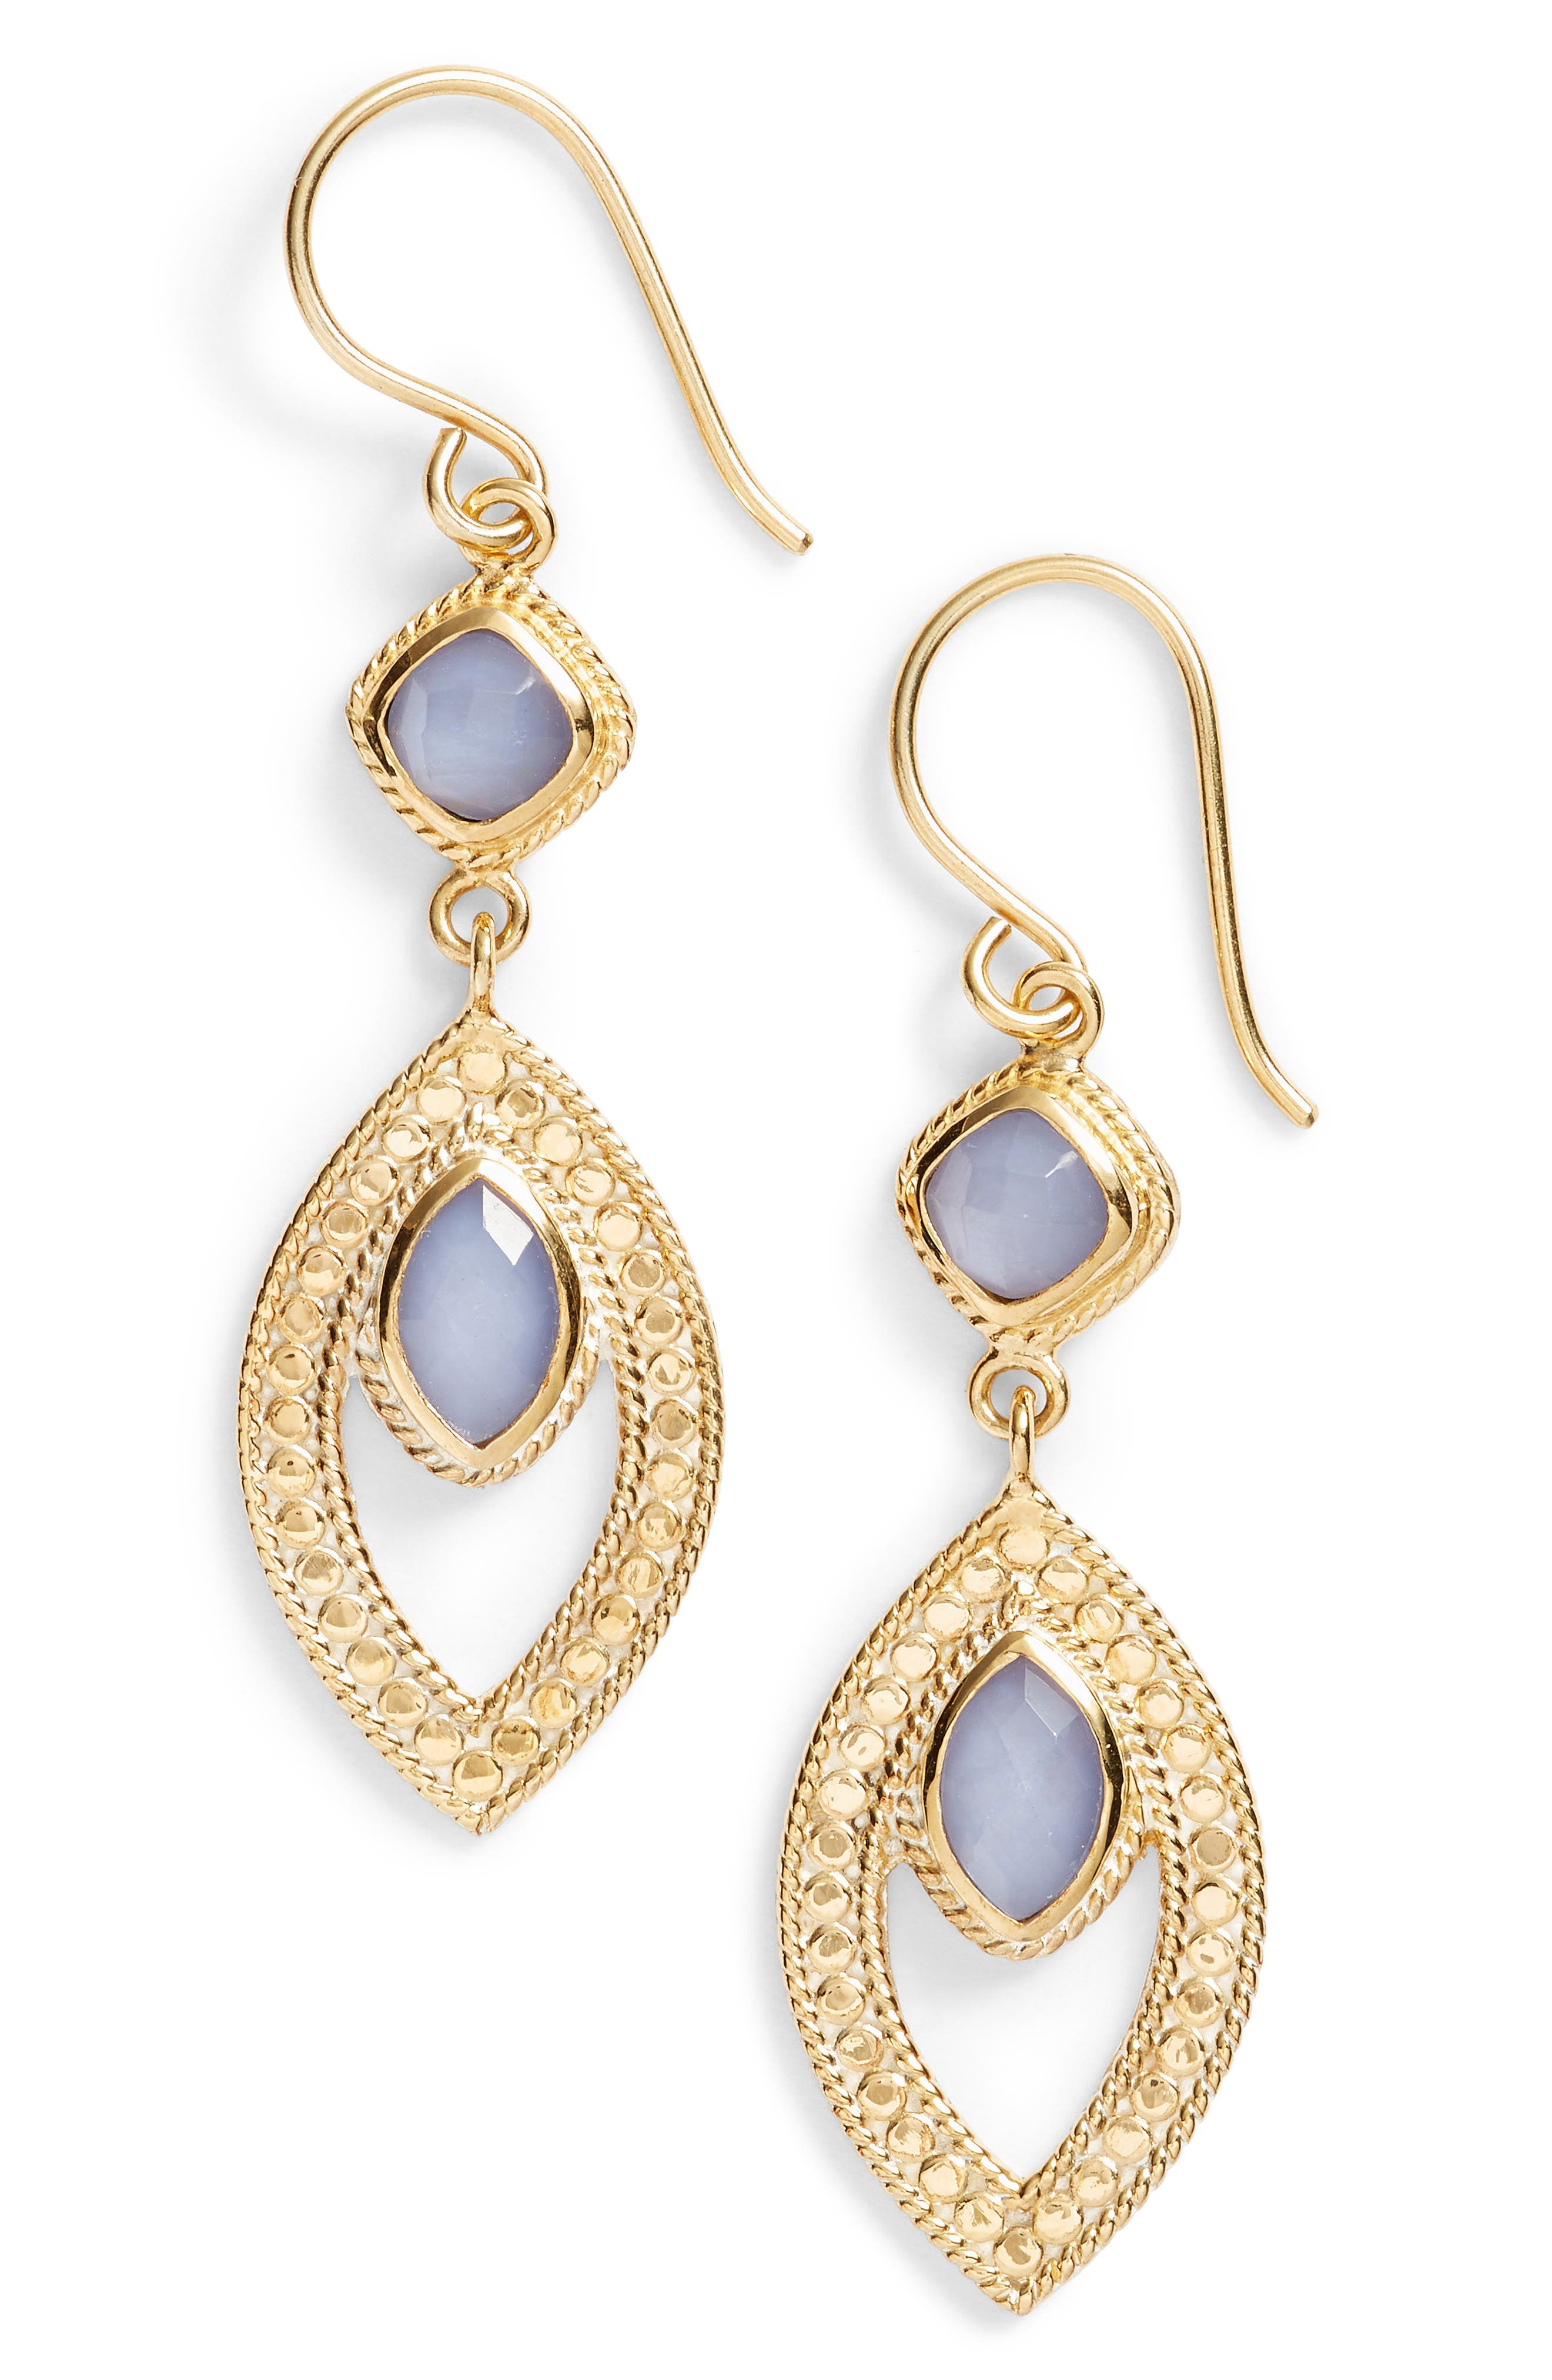 Main Image - Anna Beck Double Drop Earrings